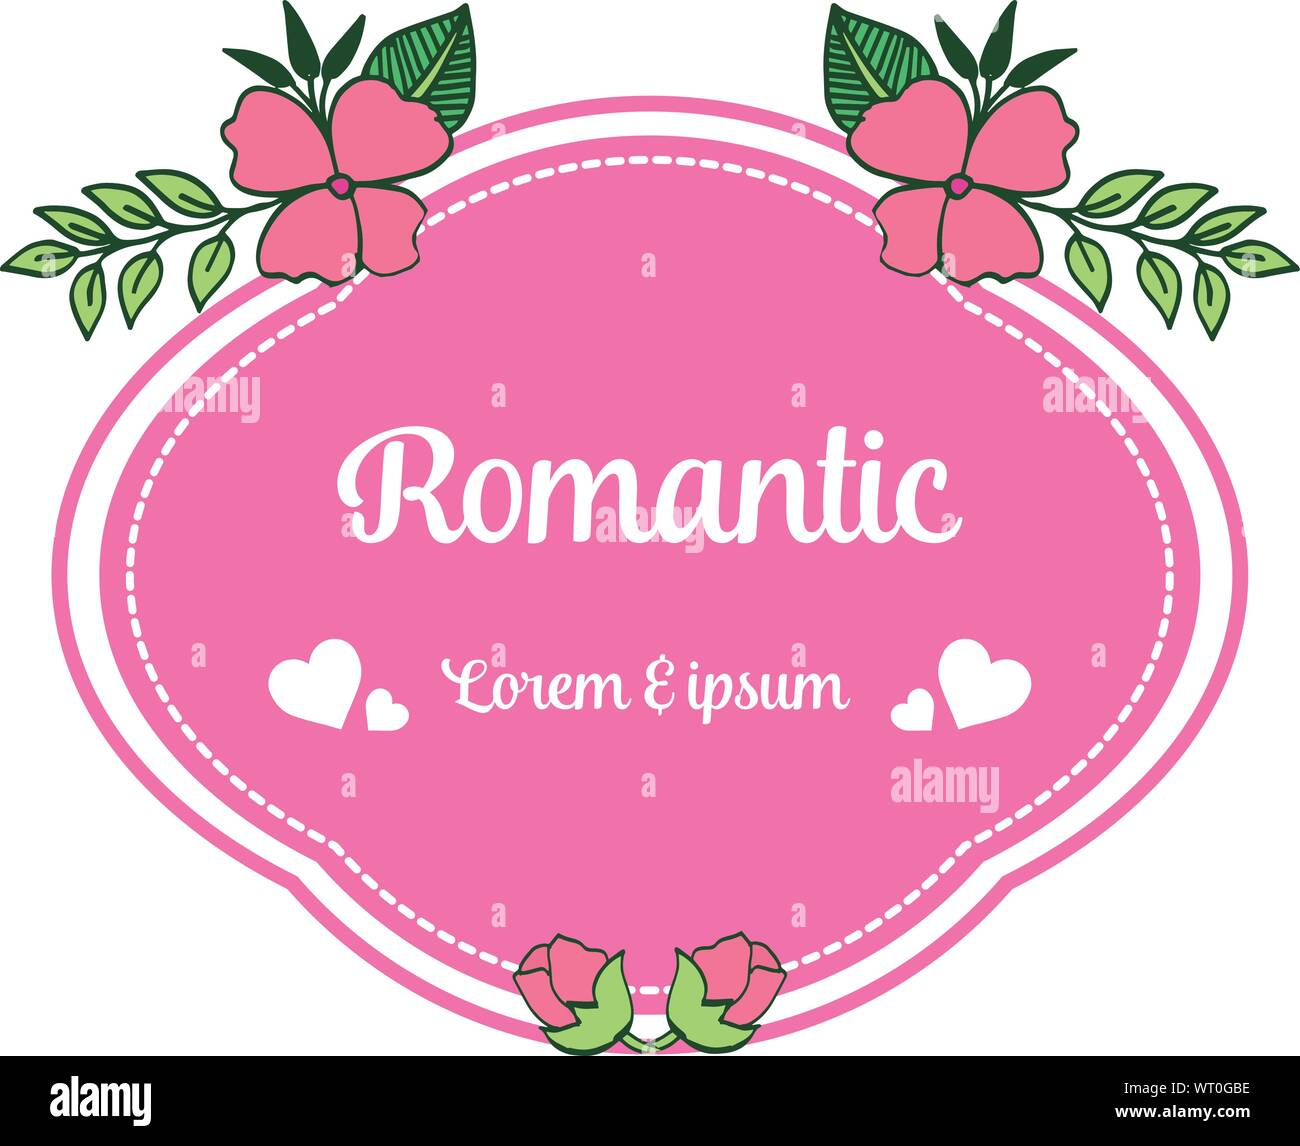 vintage wedding card romantic with pink flower frame on a white background vector stock vector image art alamy https www alamy com vintage wedding card romantic with pink flower frame on a white background vector image272920130 html